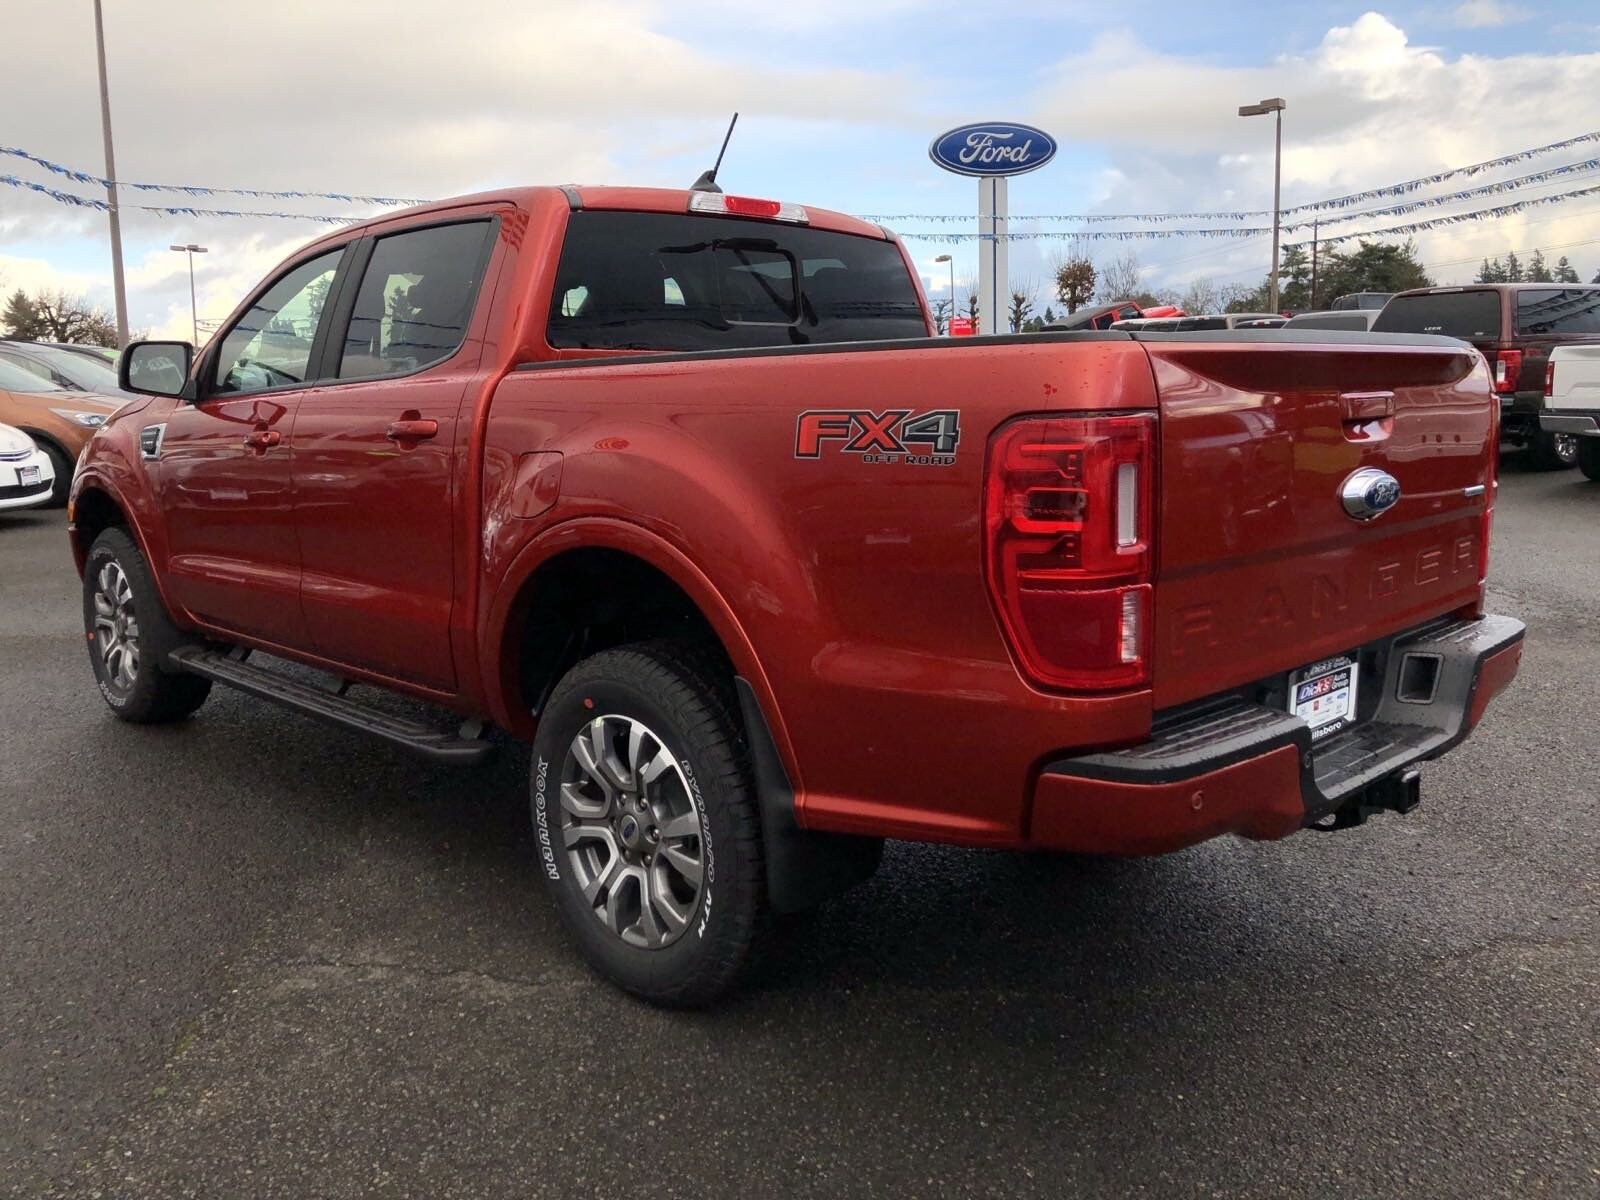 2019 Ranger SuperCrew Cab 4x4, Pickup #299840 - photo 3